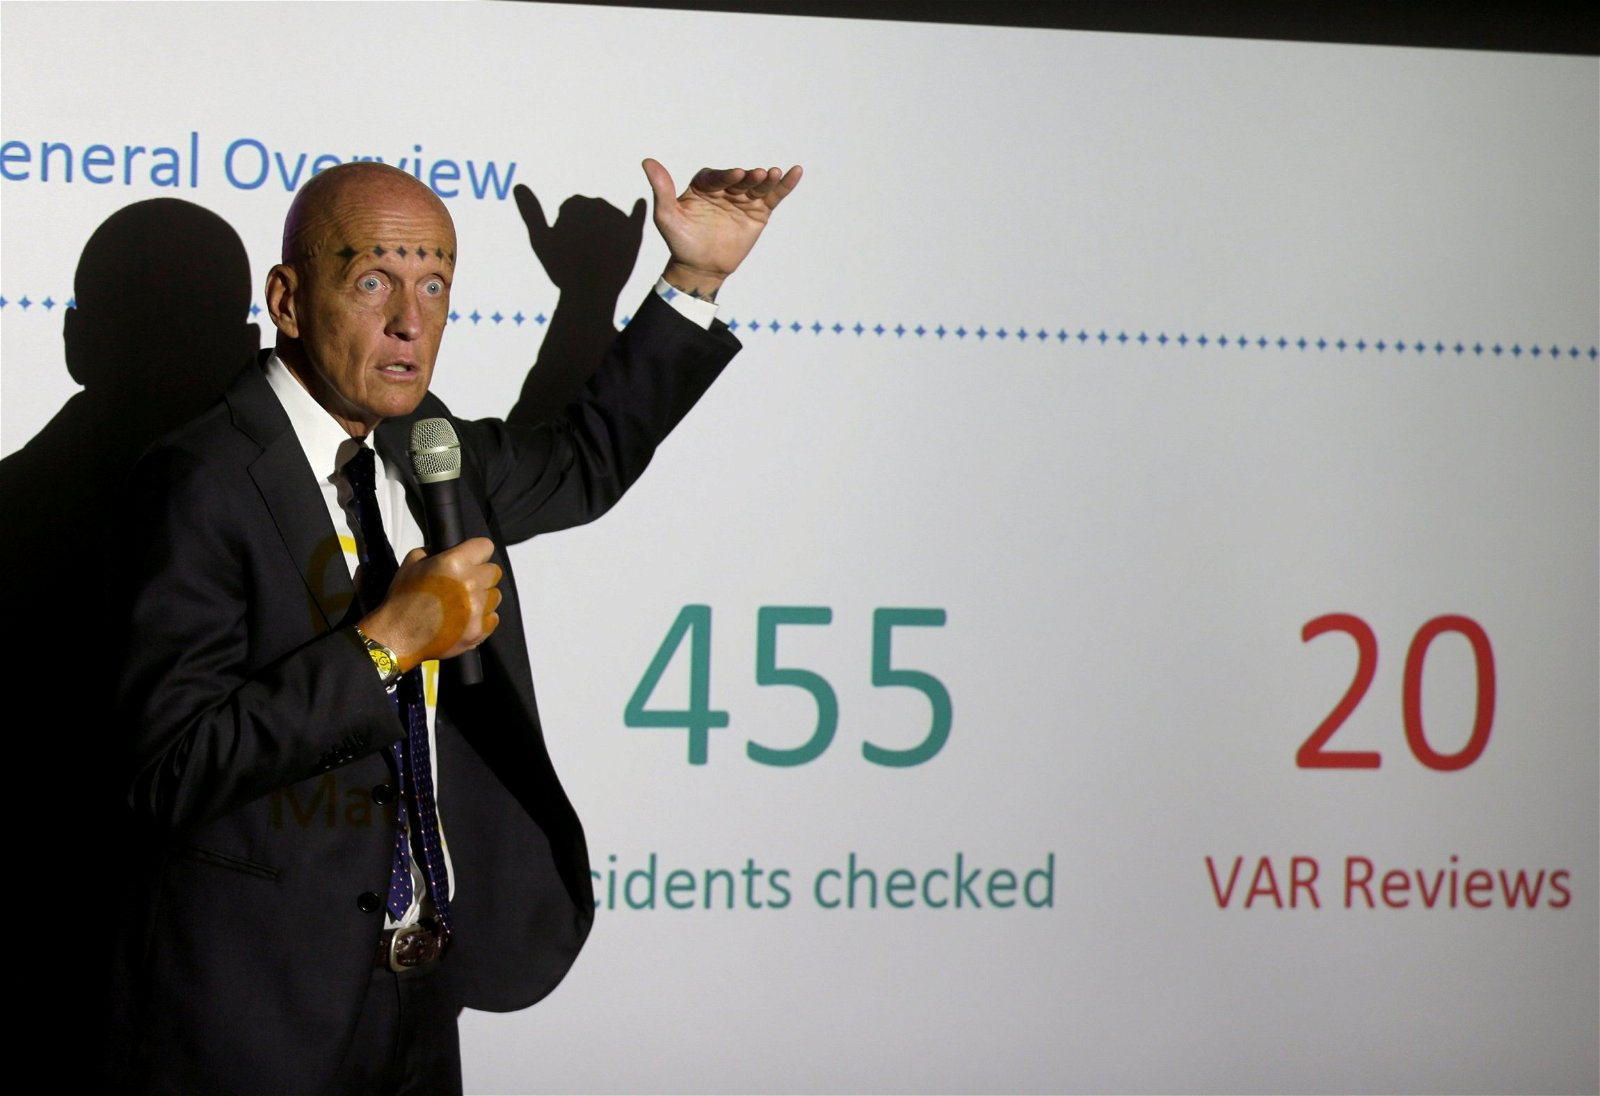 Pierluigi Collina delivers VAR stats